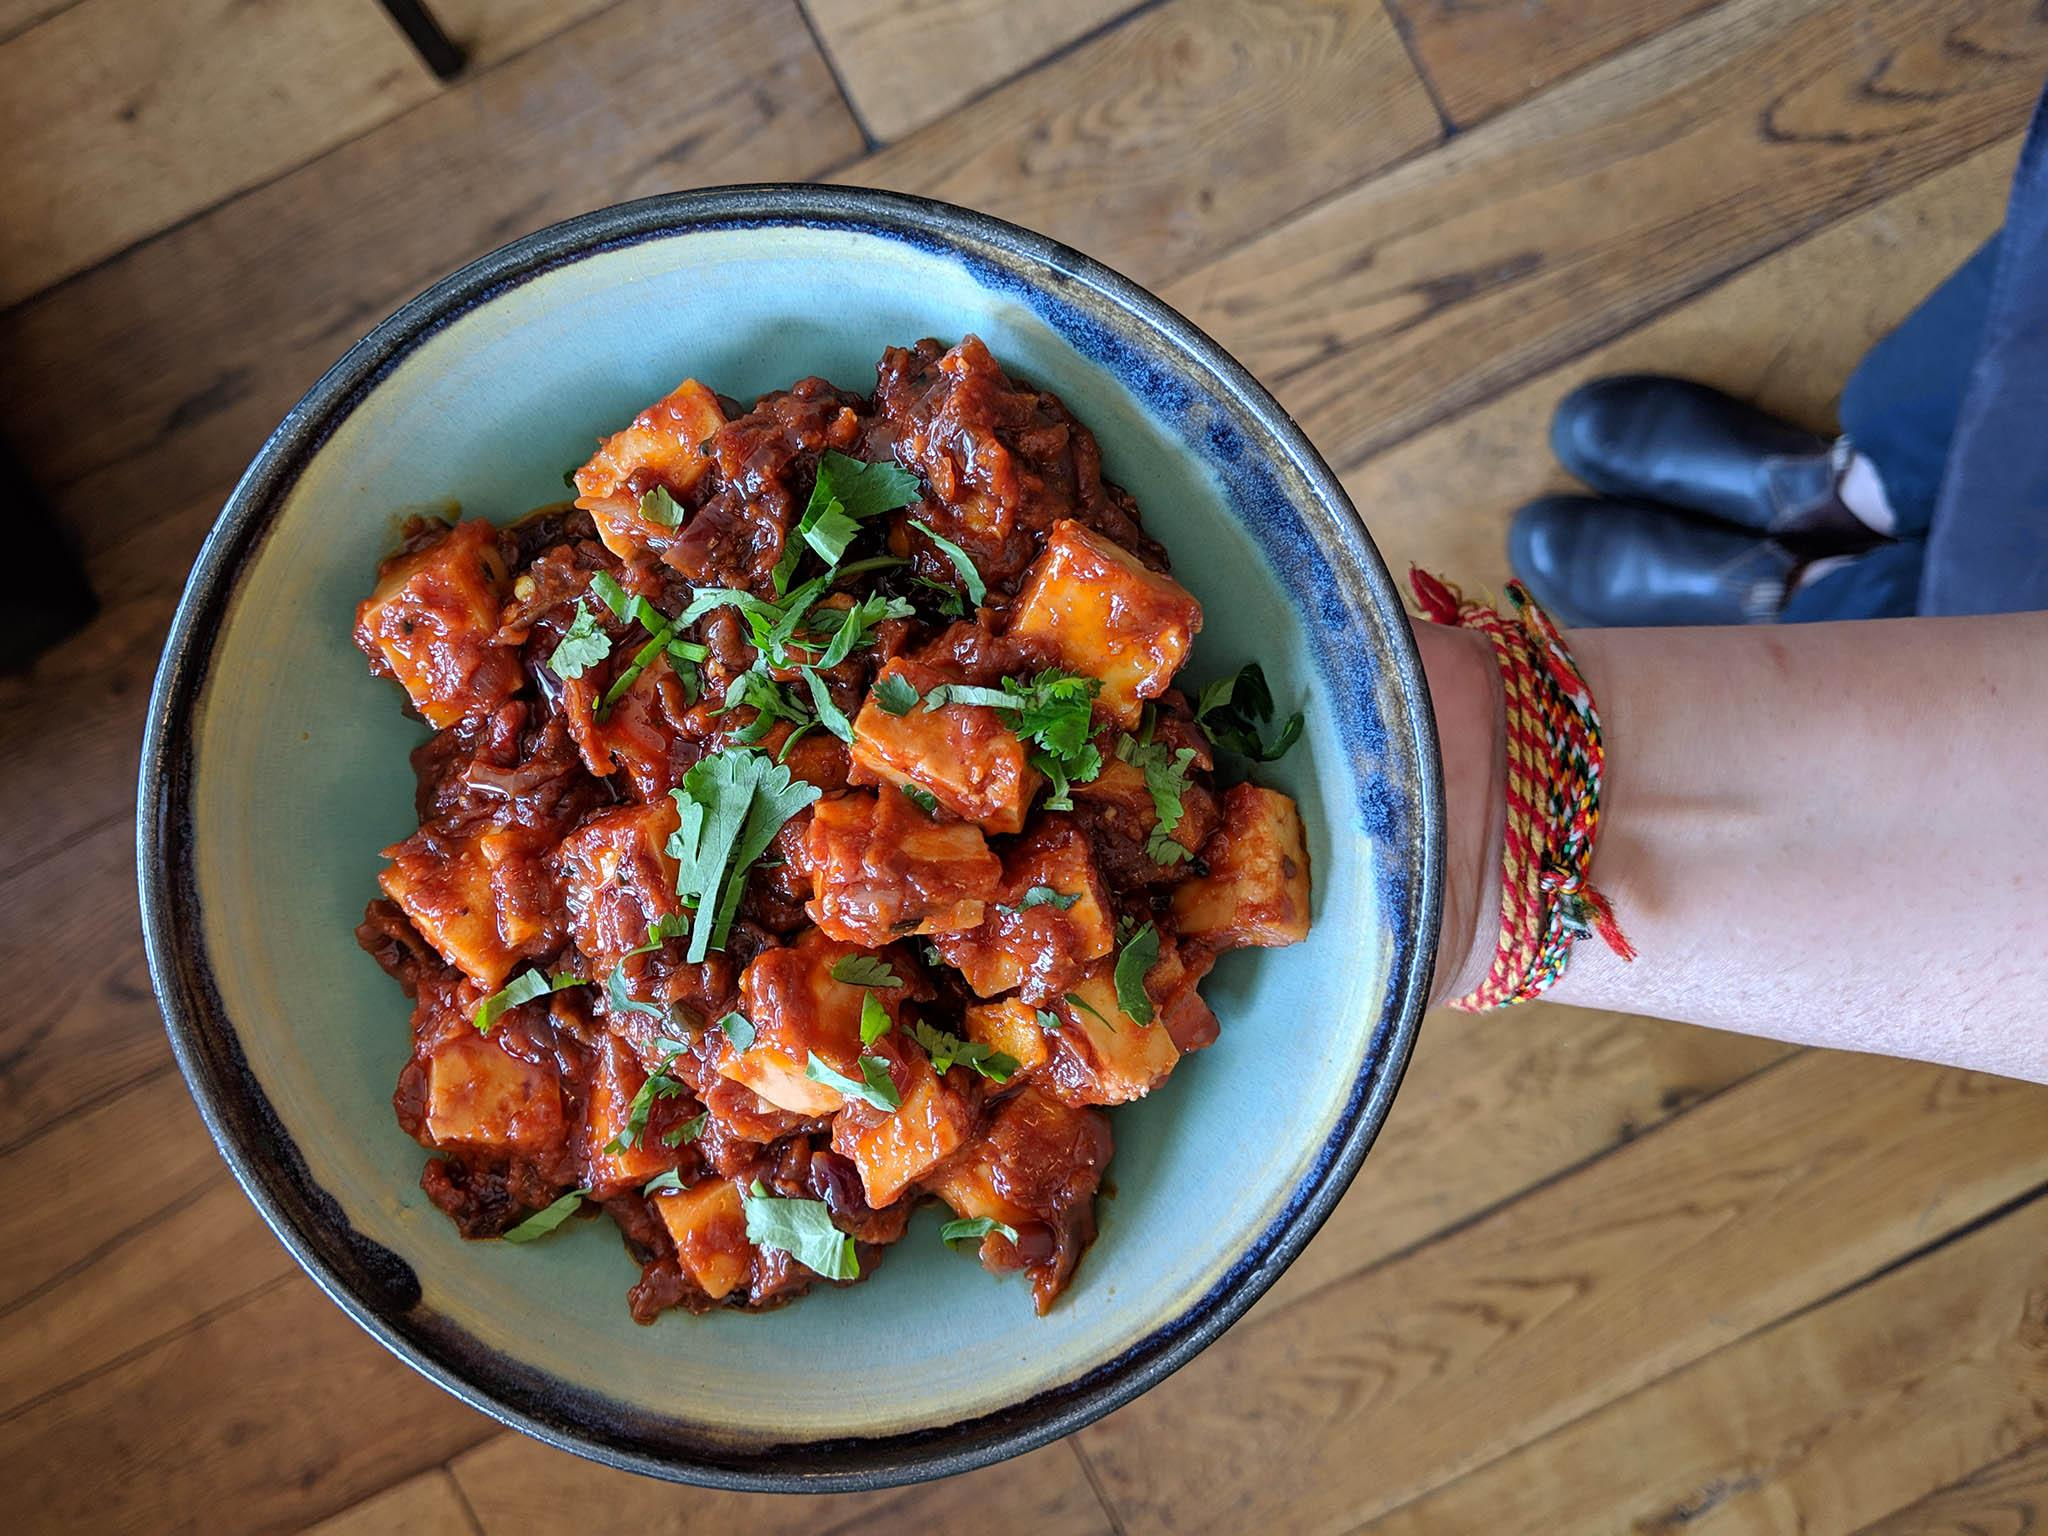 How to make Romy Gill's chilli paneer 1